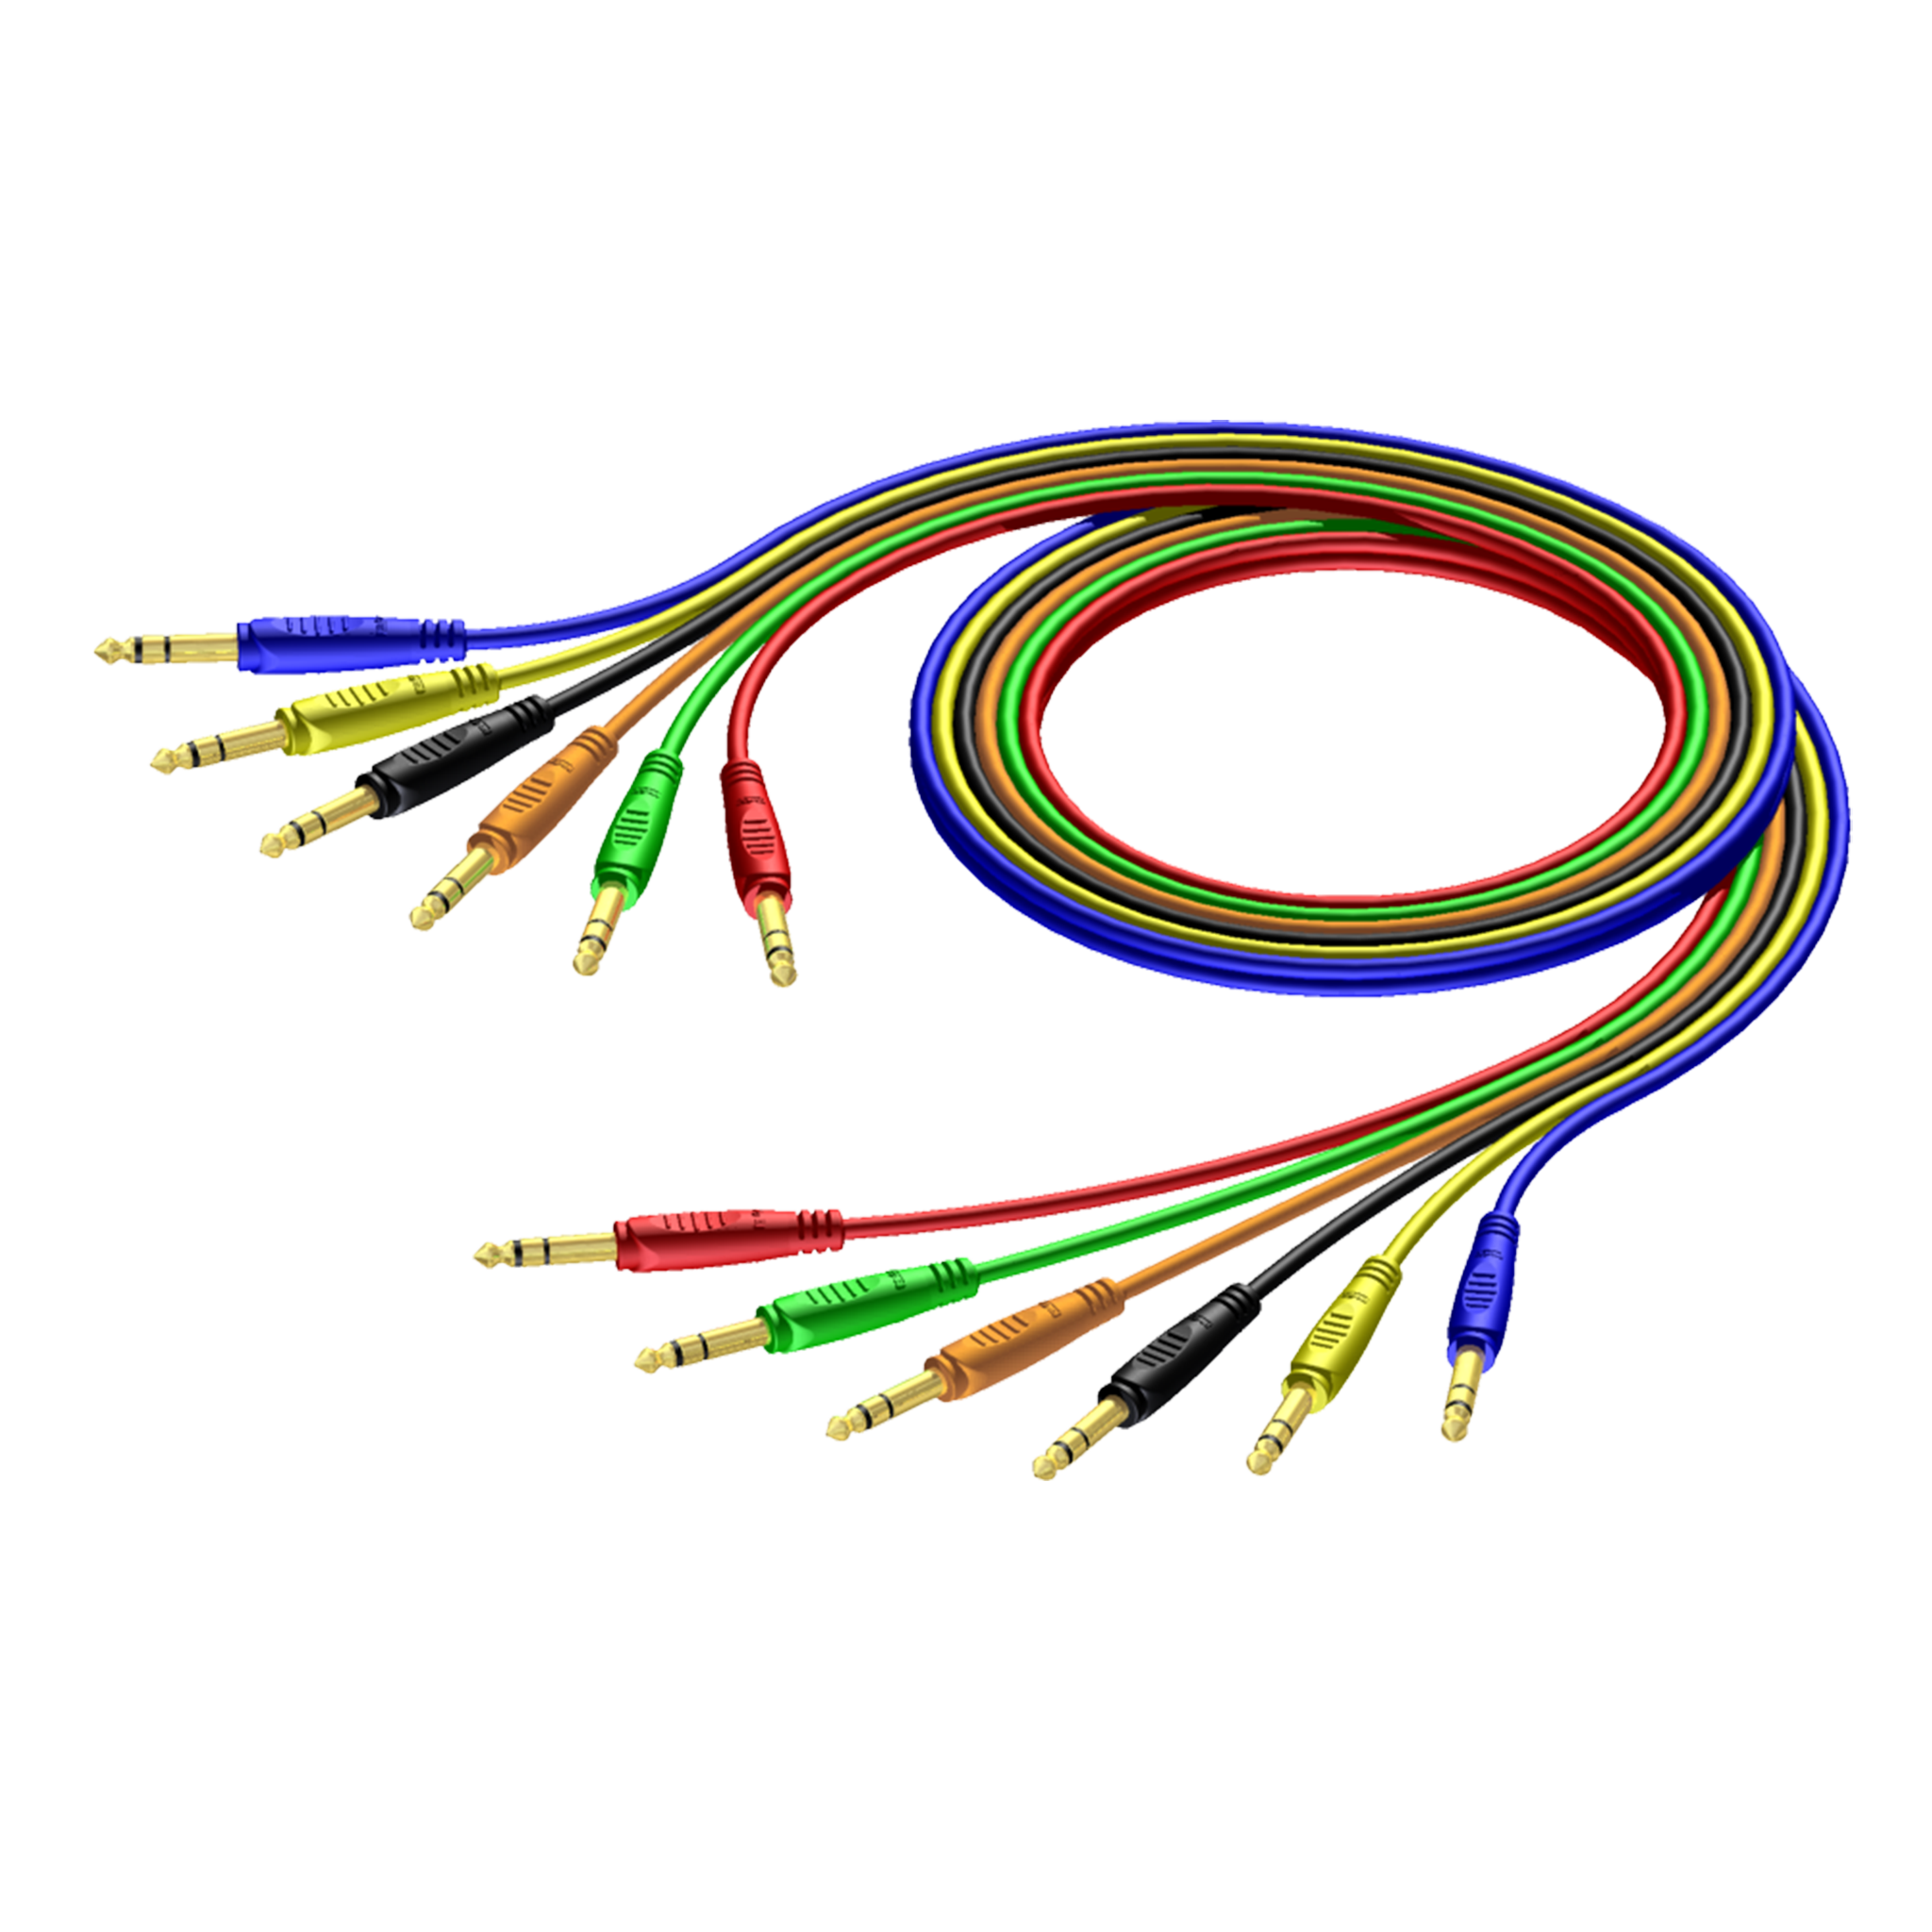 REF792 - 6.3 mm Jack male stereo to 6.3 mm Jack male stereo - cable set in 6 colours